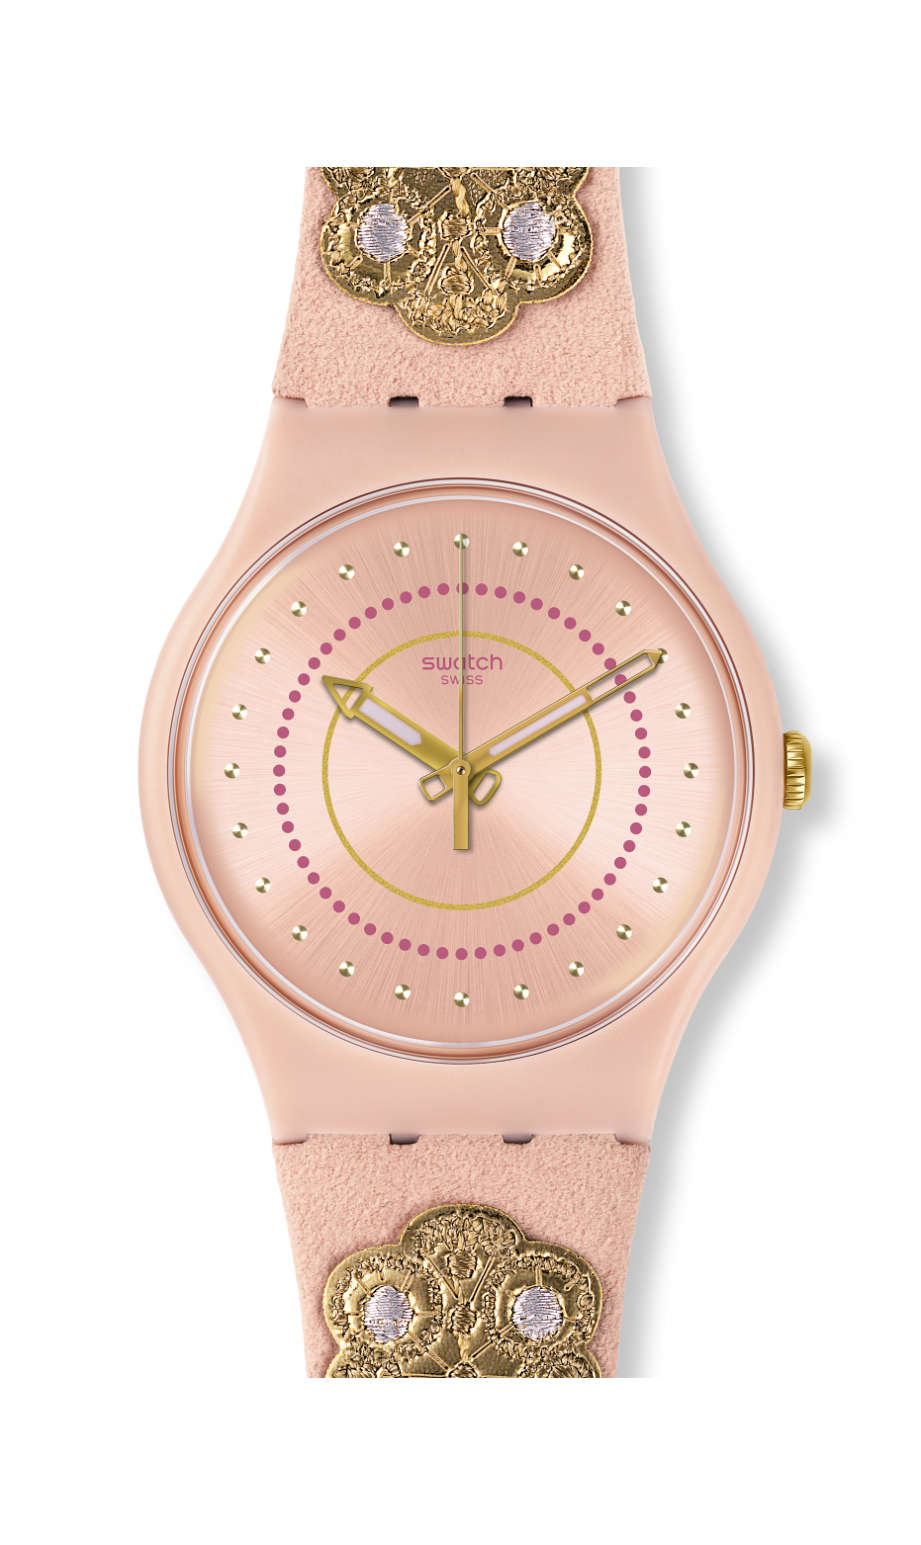 Swatch - EMBROIDERY - 1